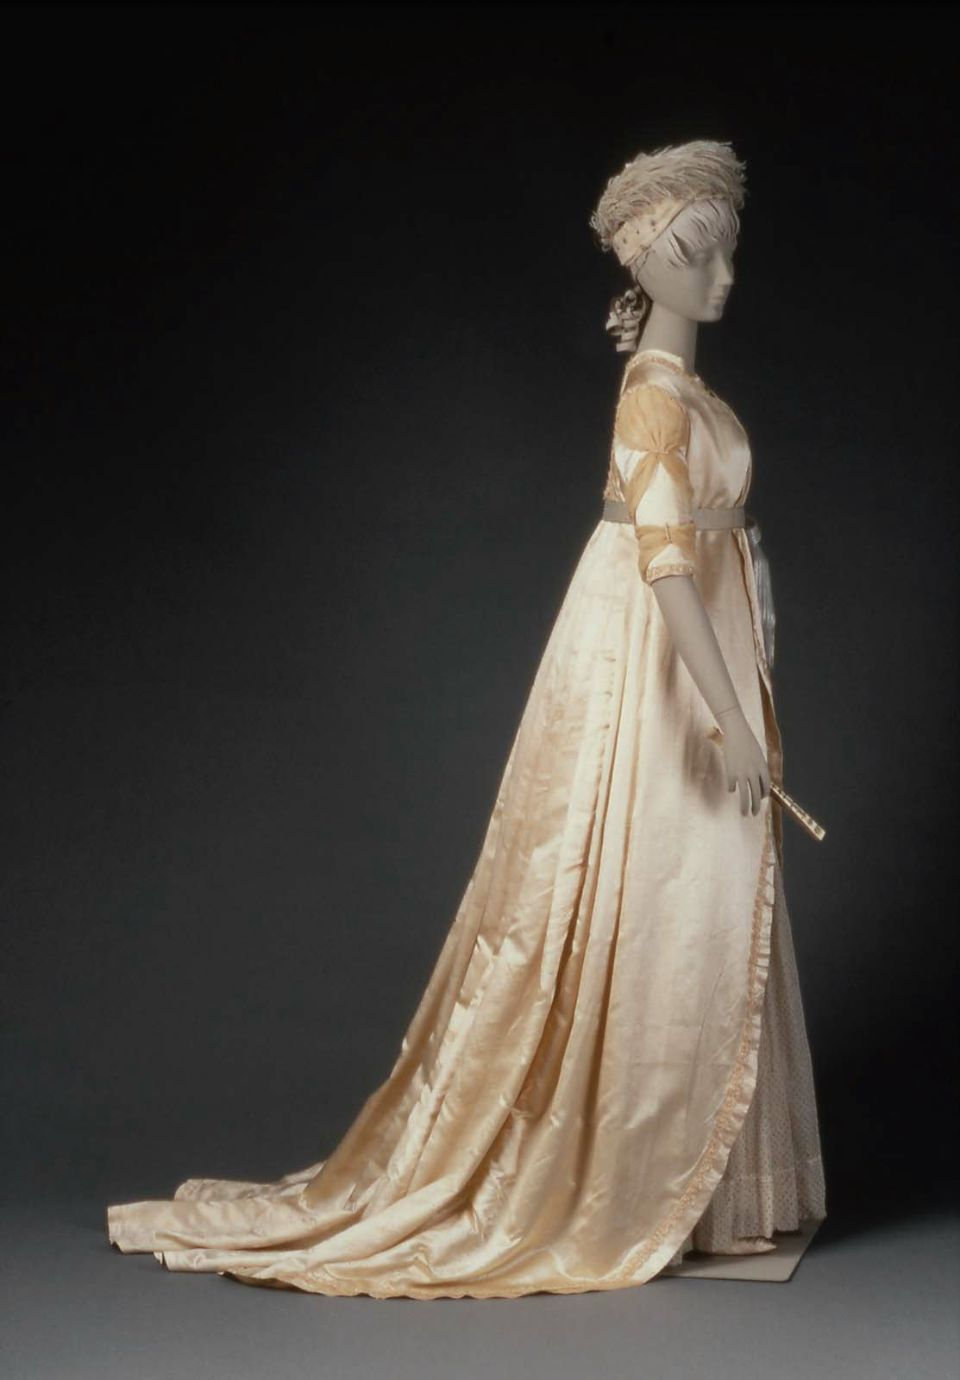 Regency Wedding Dresses and Later Developments in Bridal Fashions ...